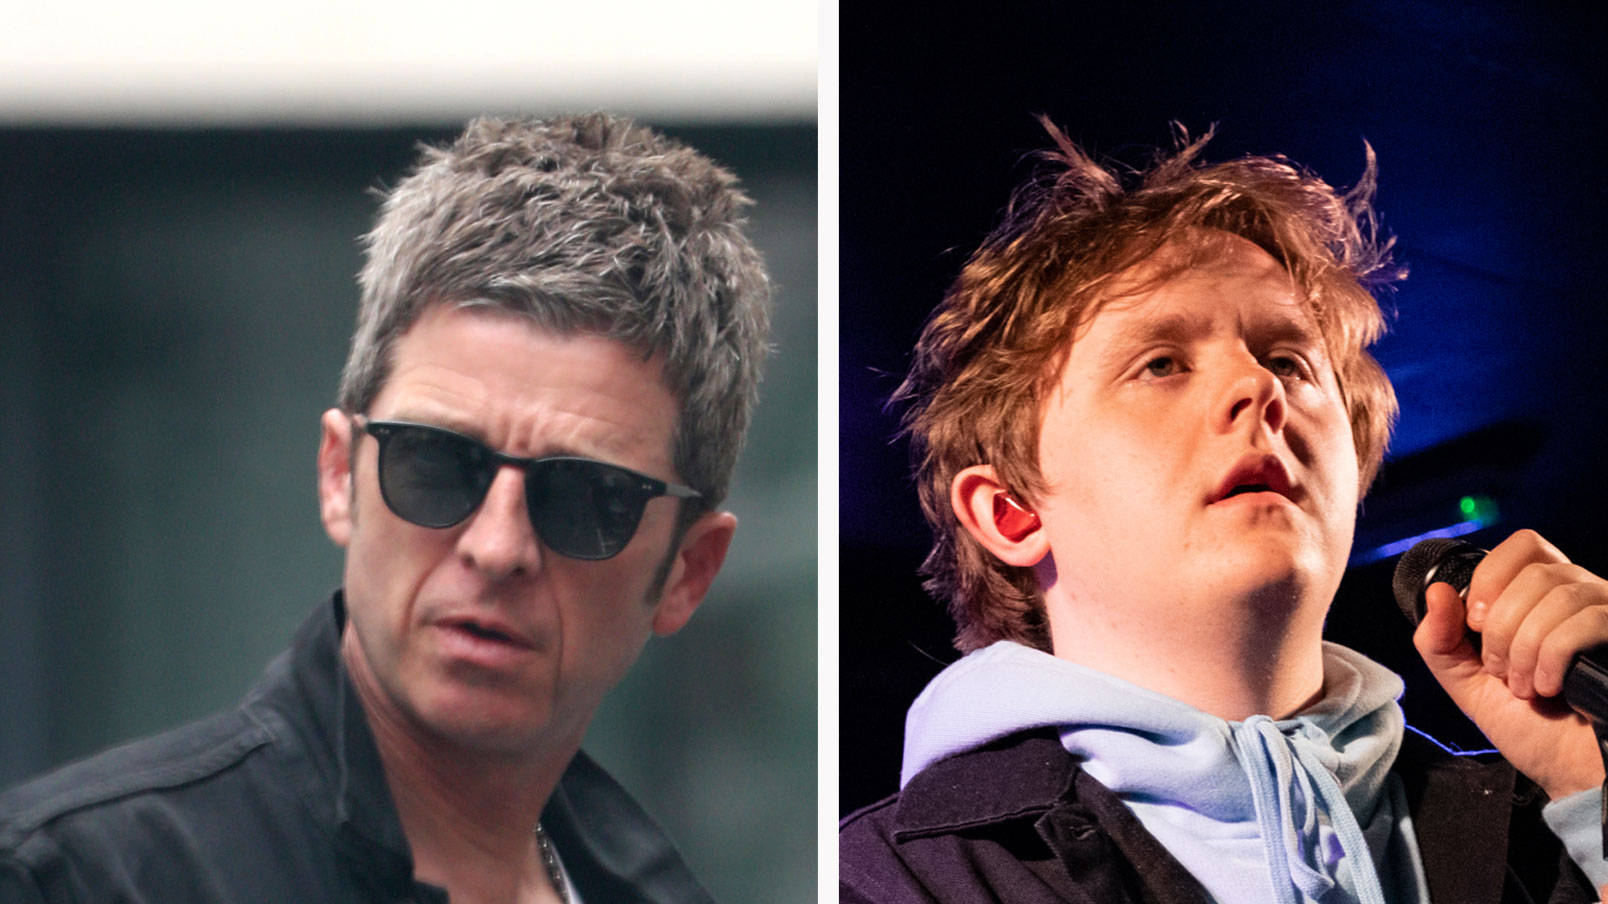 VIDEO: Noel Gallagher hits back at Lewis Capaldi's reaction videos after he slagged him off online